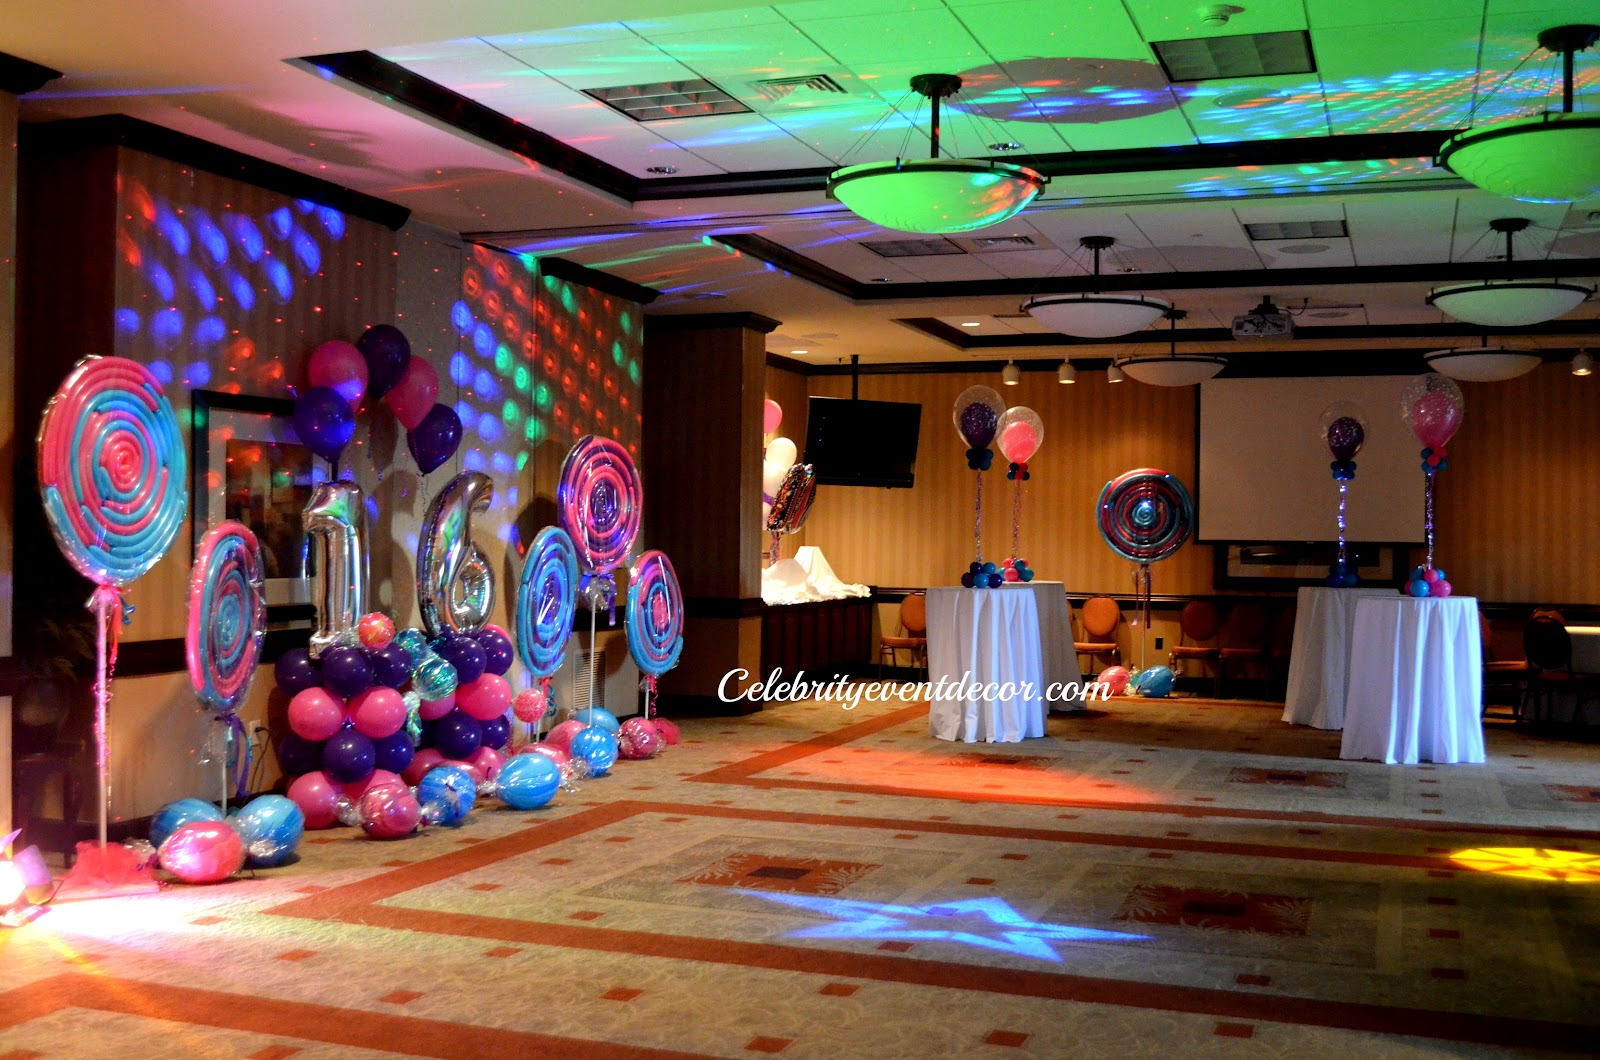 Celebrity event decor banquet hall llc august 2012 for Decoration annee 80